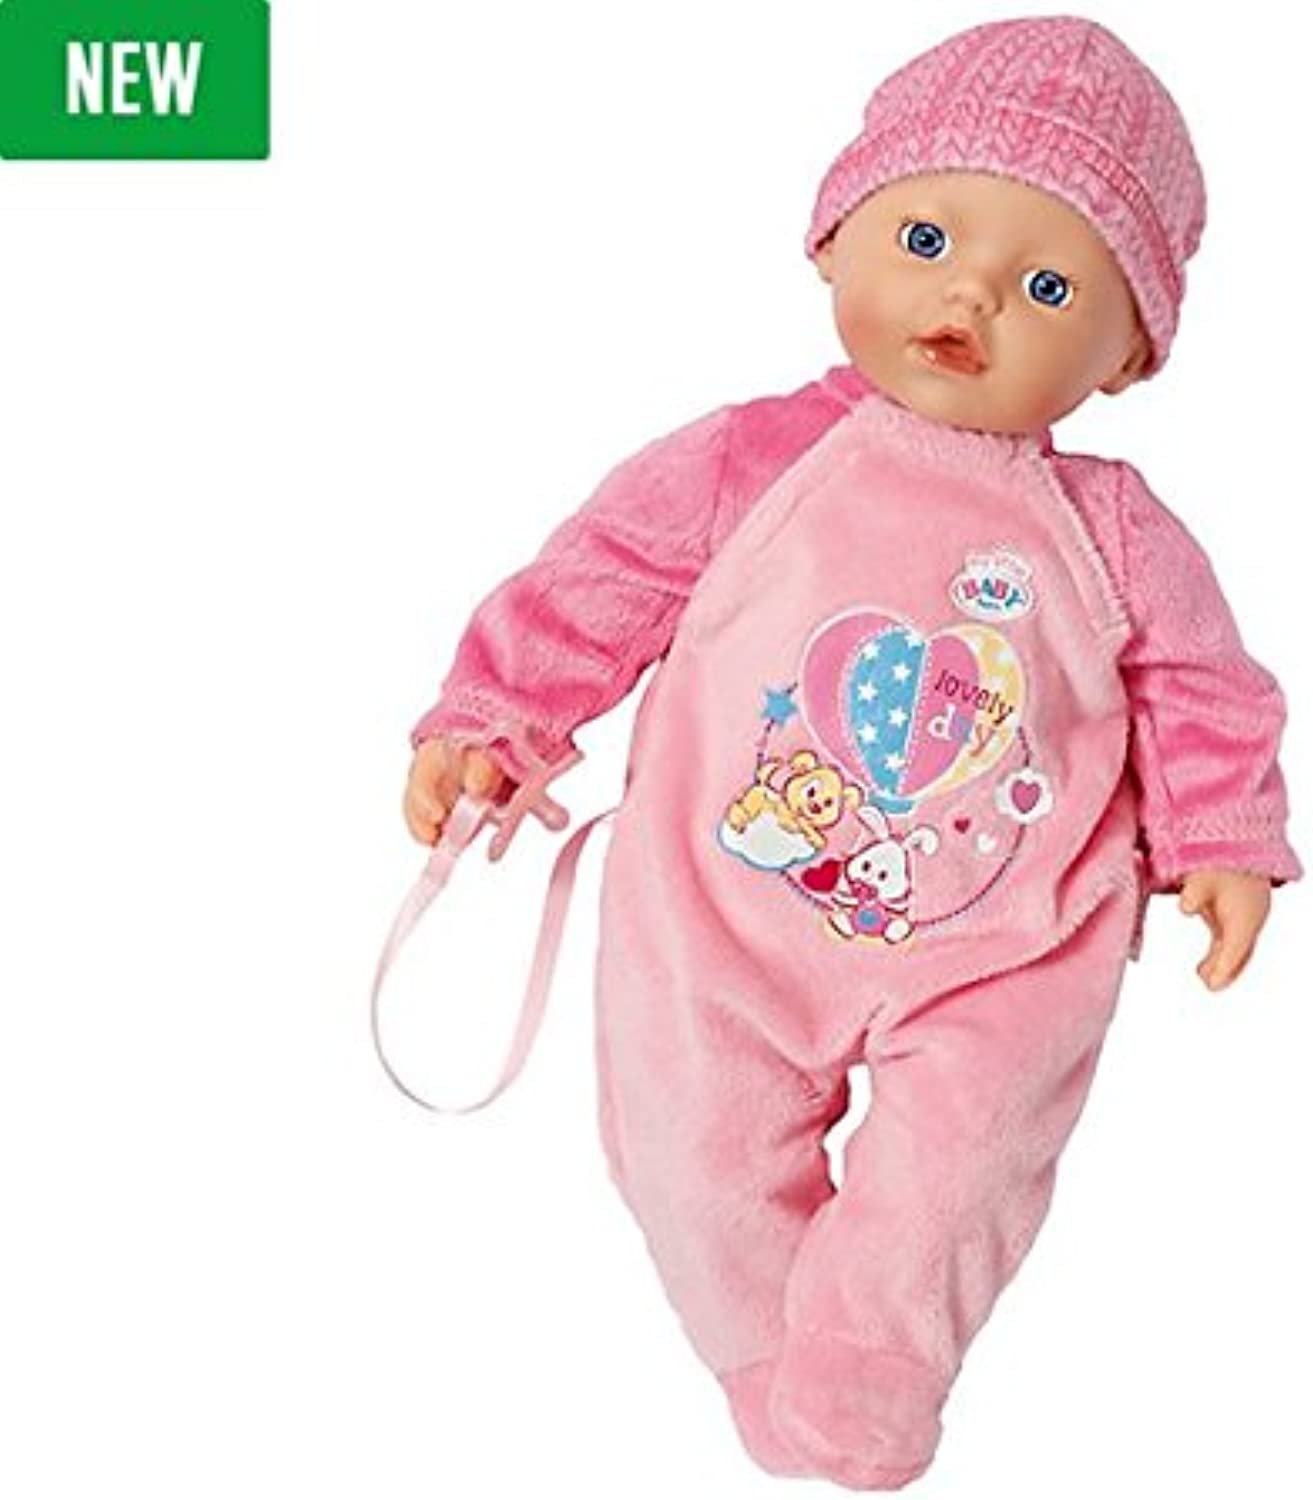 Brand New My Little BABY Born Supersoft Doll with Bed Playset